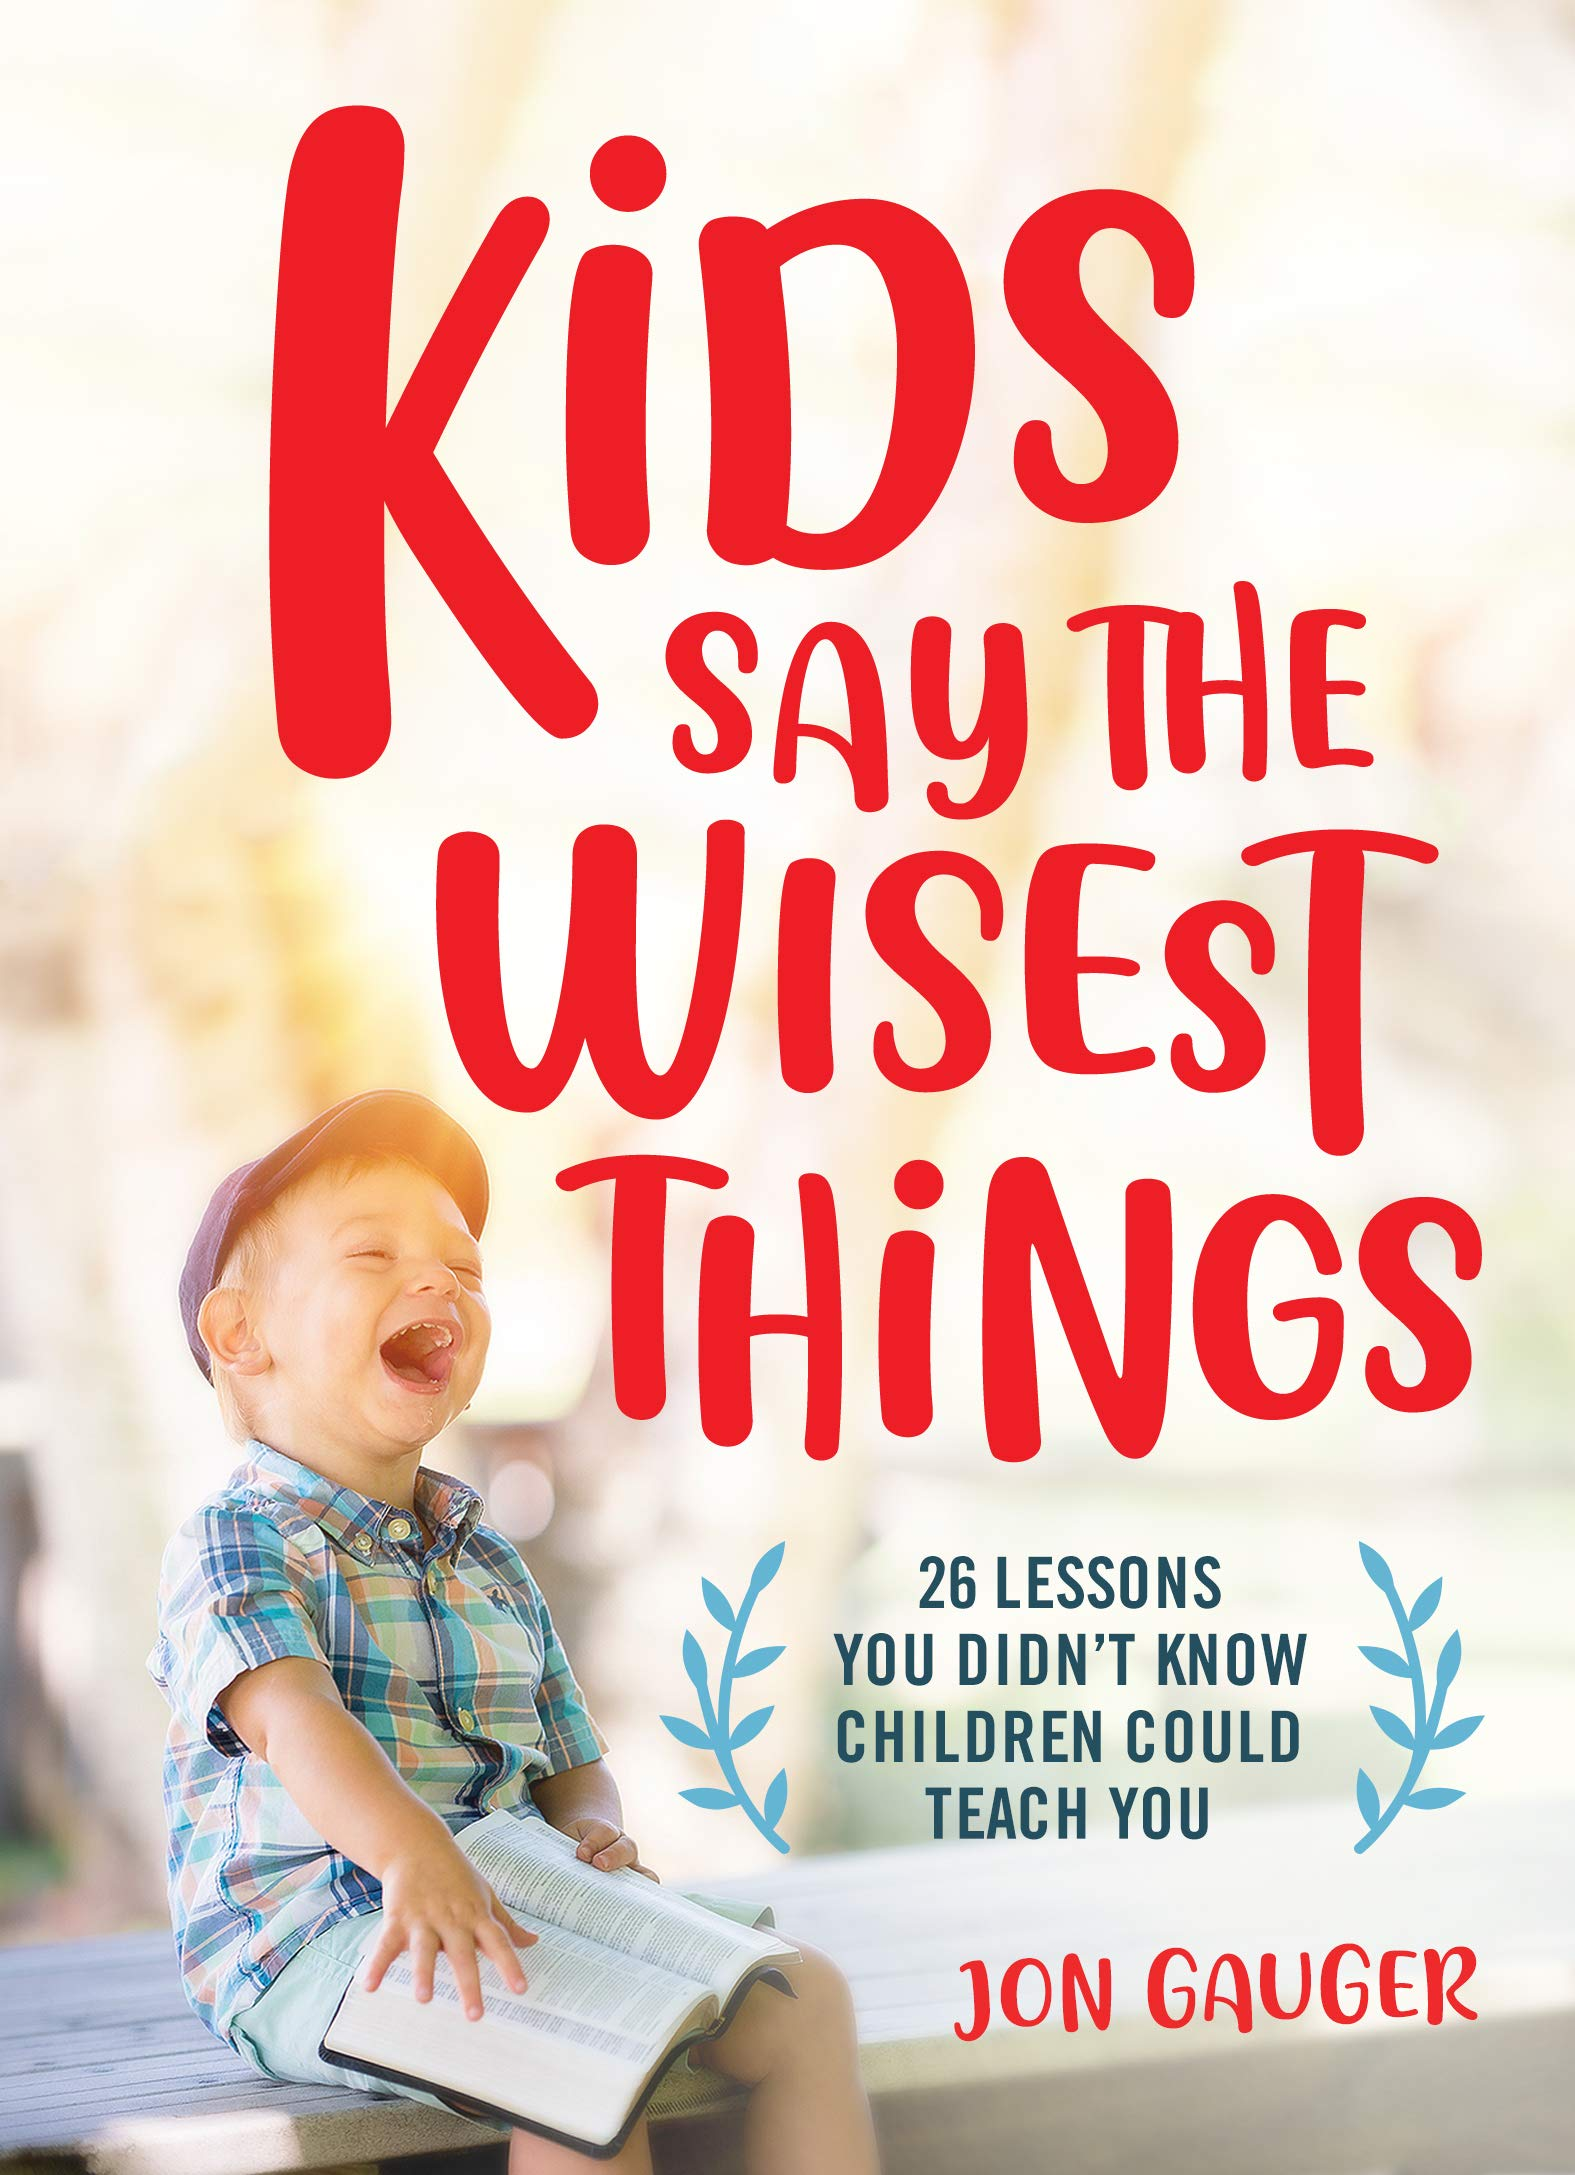 Kids Say the Wisest Things: 26 Lessons You Didn't Know Children Could Teach You {A Book Review}